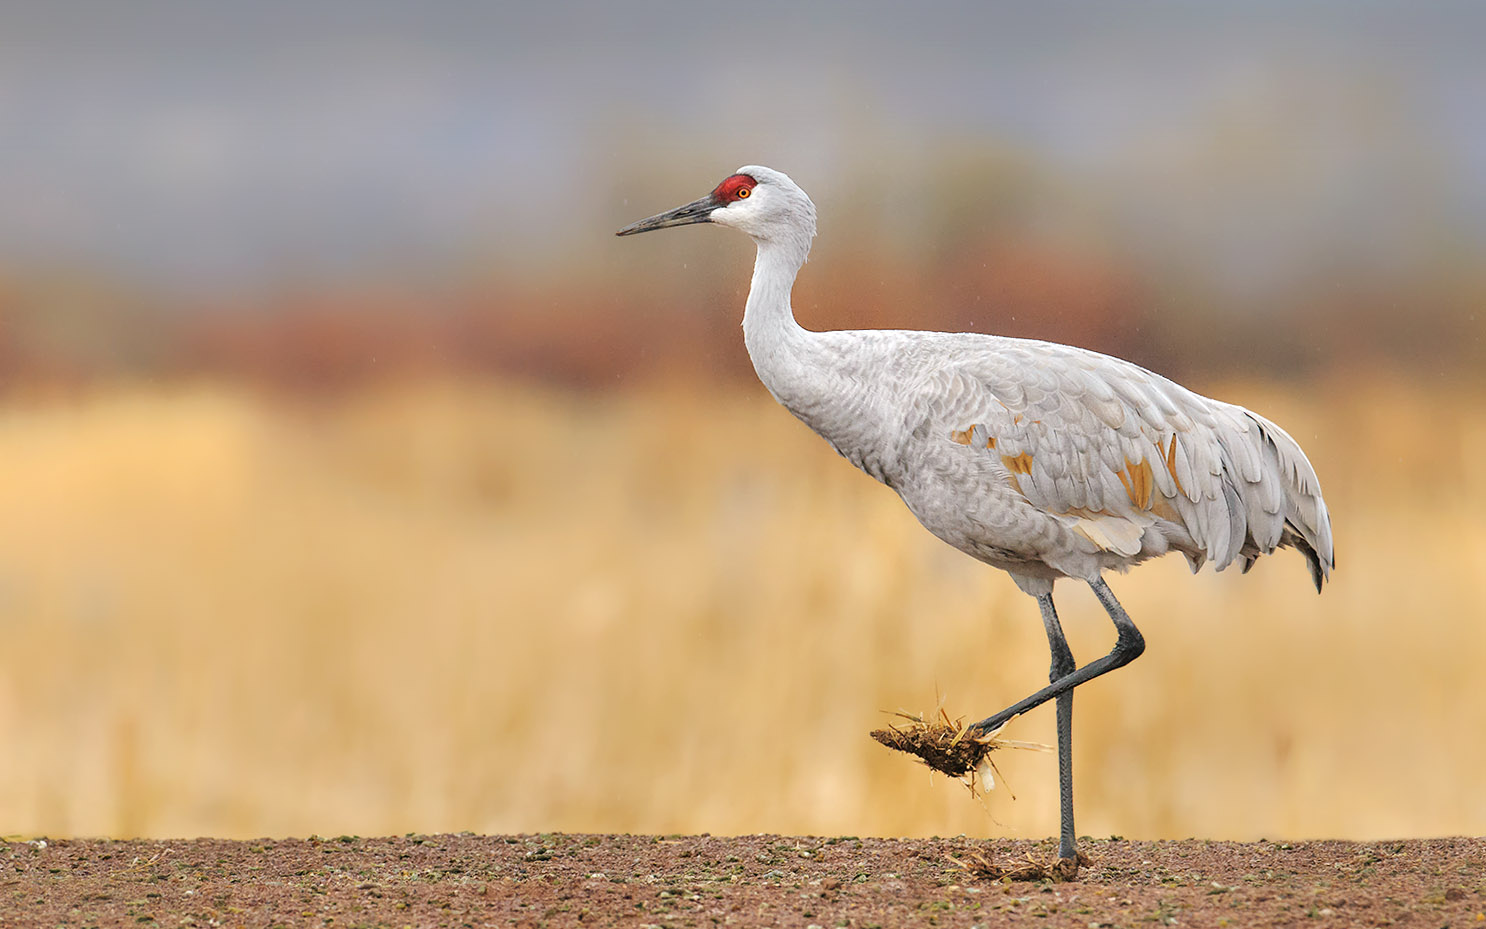 Sandhill Crane with Muddy Feet